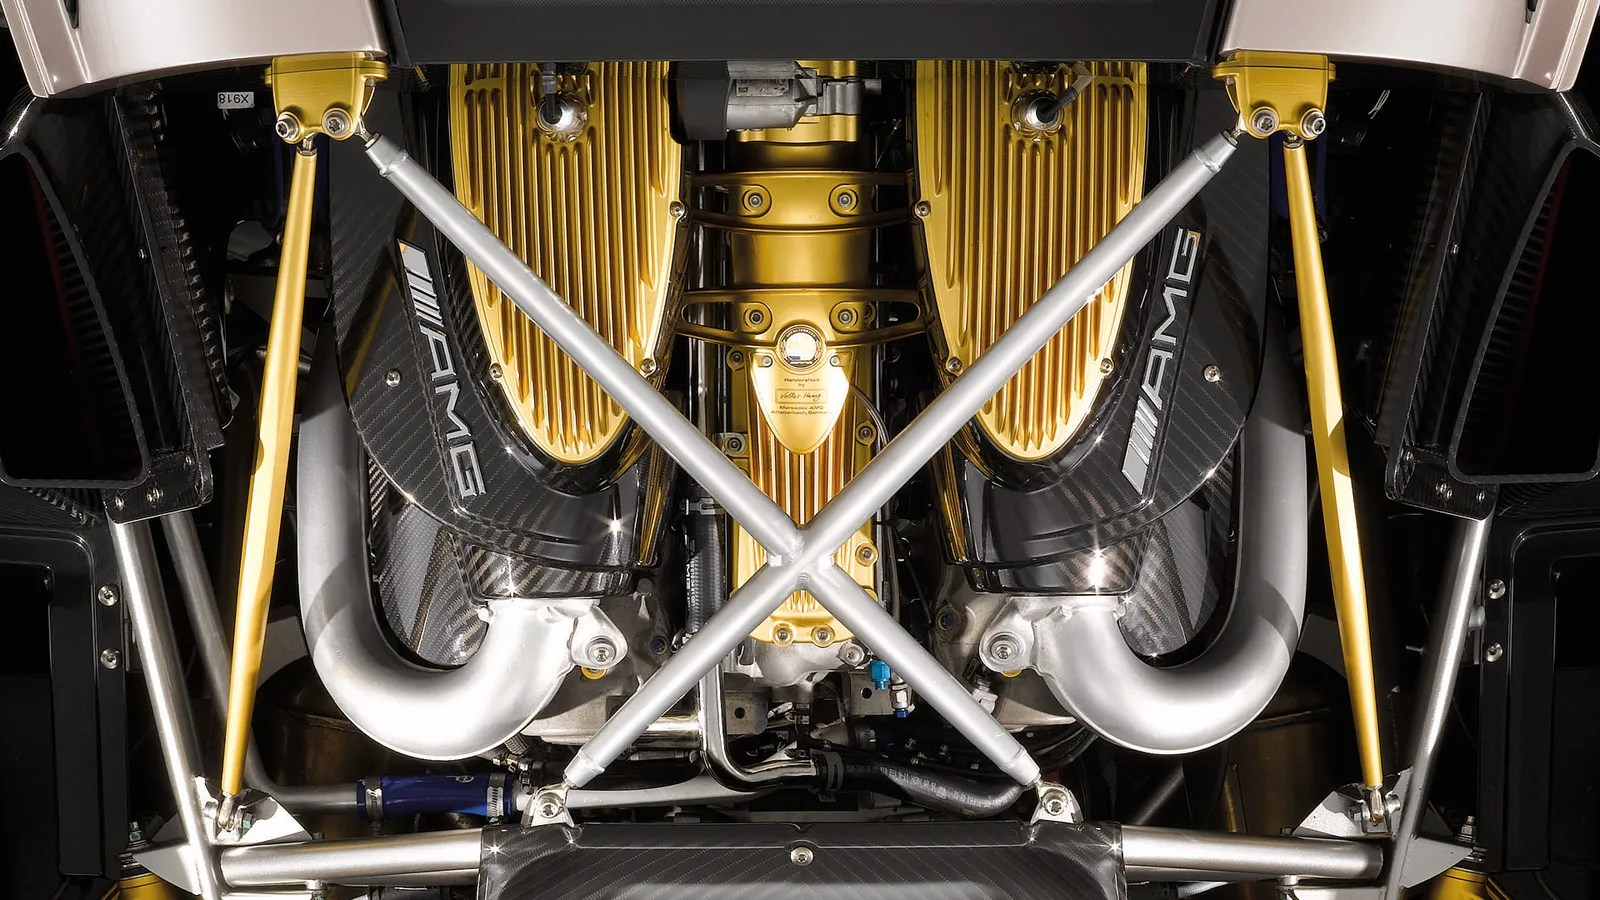 Ford Mustang Race Car Wallpaper The Ten Most Beautiful Engines Ever Made